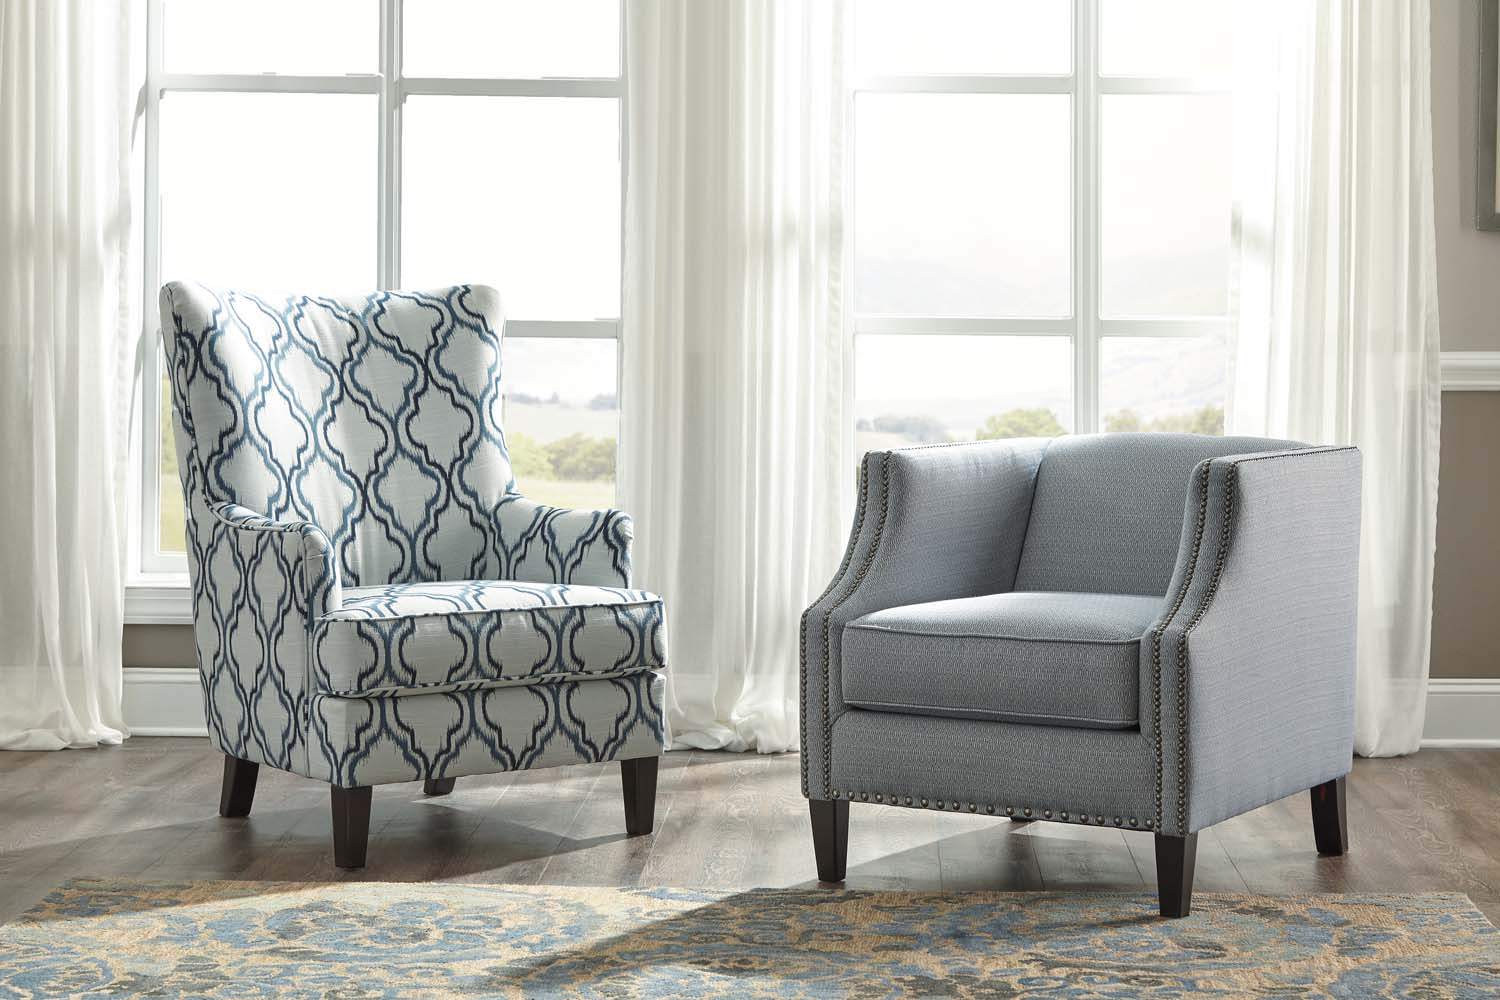 7130421ashley Furniture Accent Chair Westco Home Furnishings